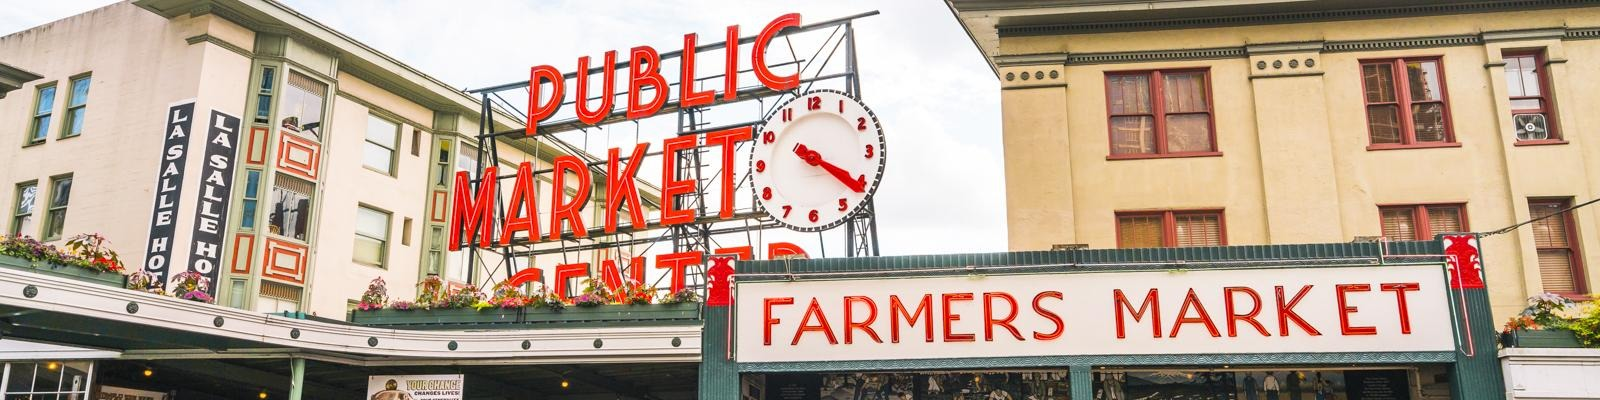 How to Select Quality Seafood: Tips from a Pike Place Fishmonger